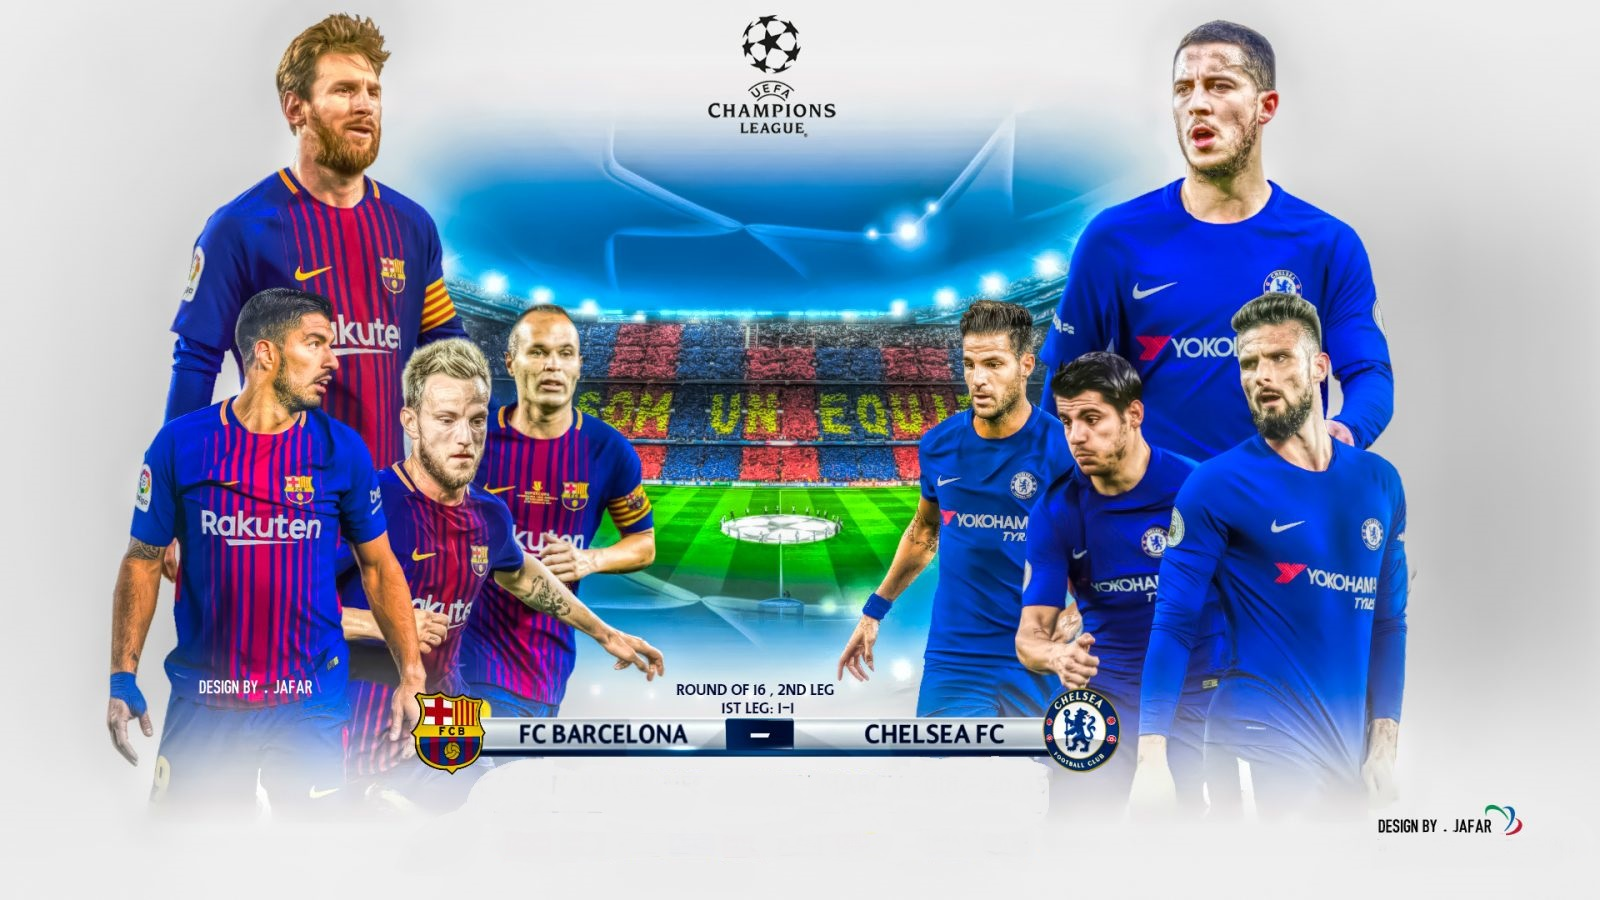 fc_barcelona_chelsea_fc_champions_league_wallpaper-1600x900.jpg